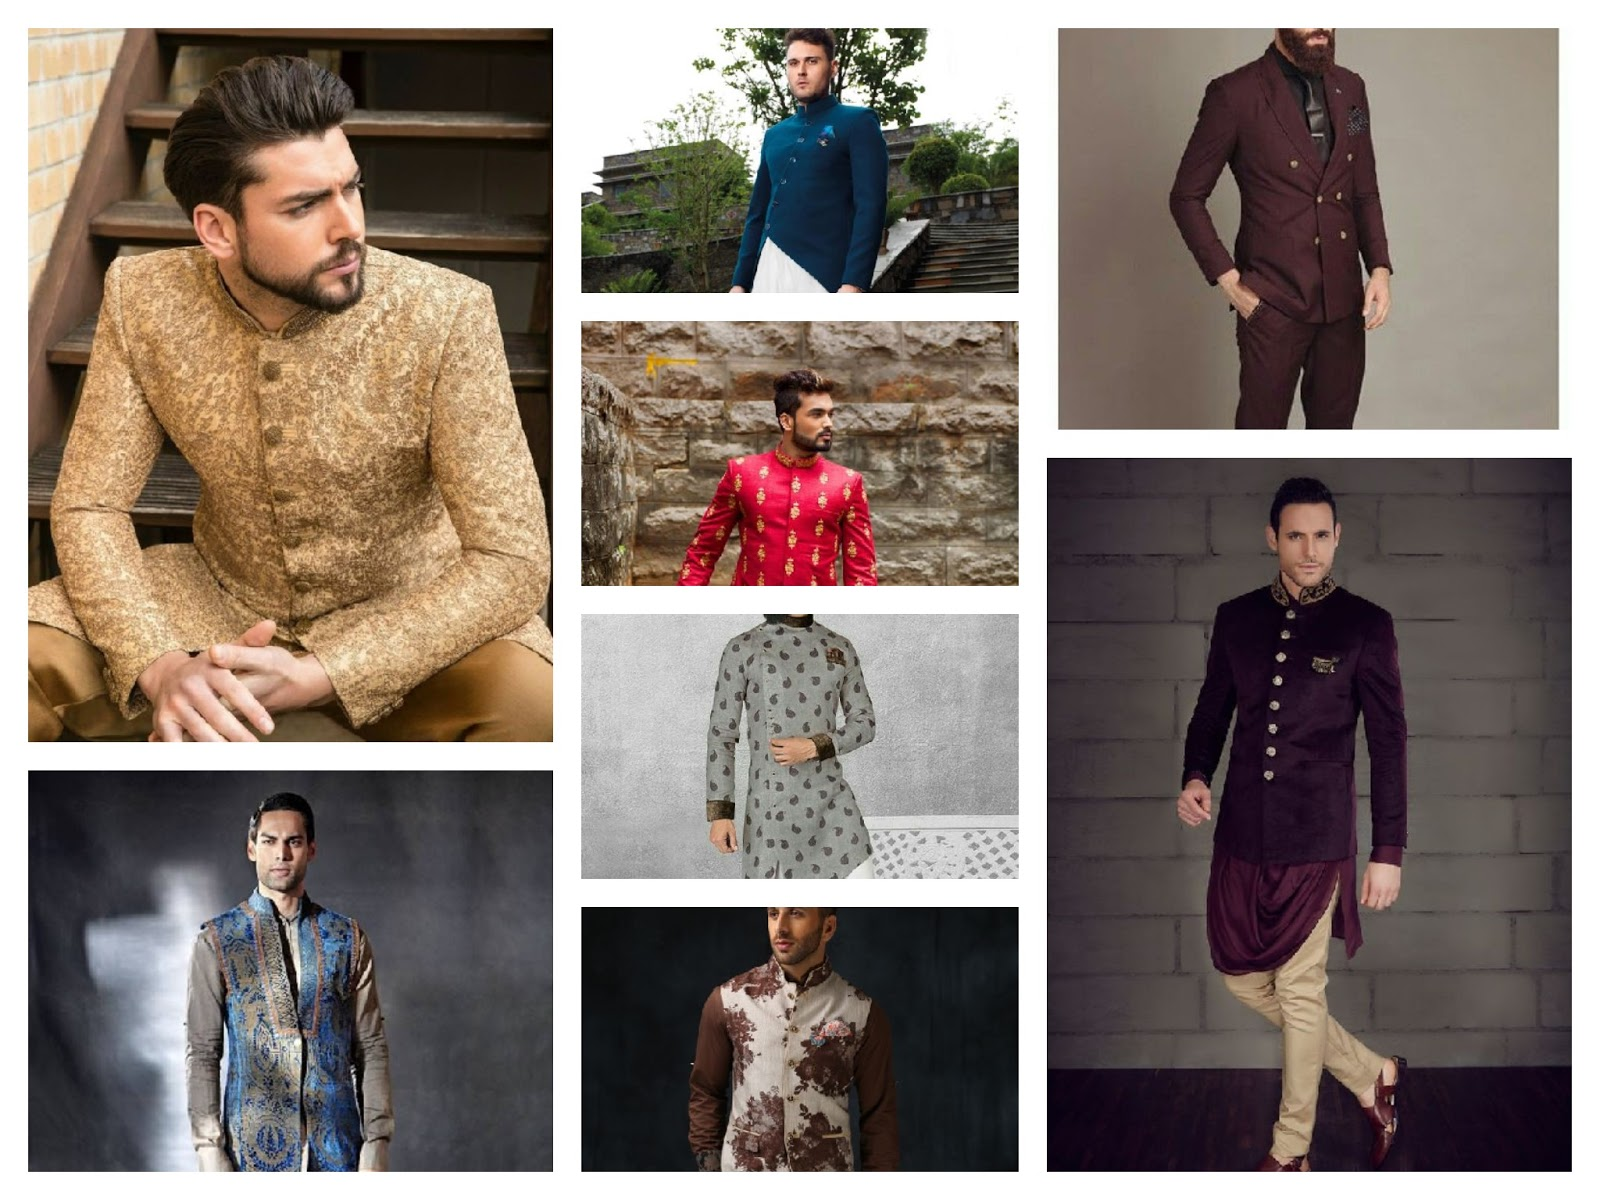 Wedding Attire For Men.30 Outfits Men Can Wear At An Indian Wedding What To Wear To An